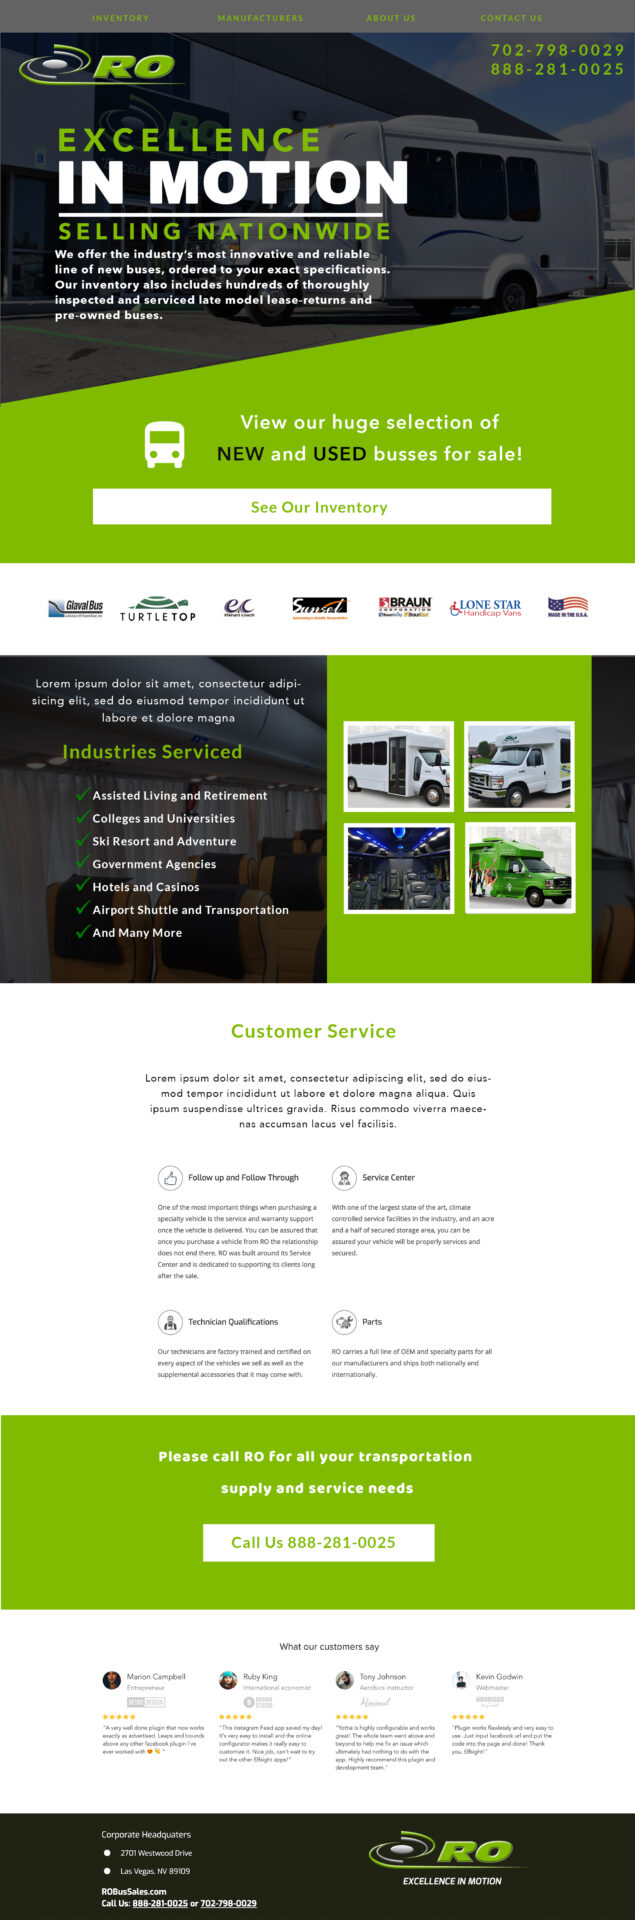 ROBusSales HomePage Design